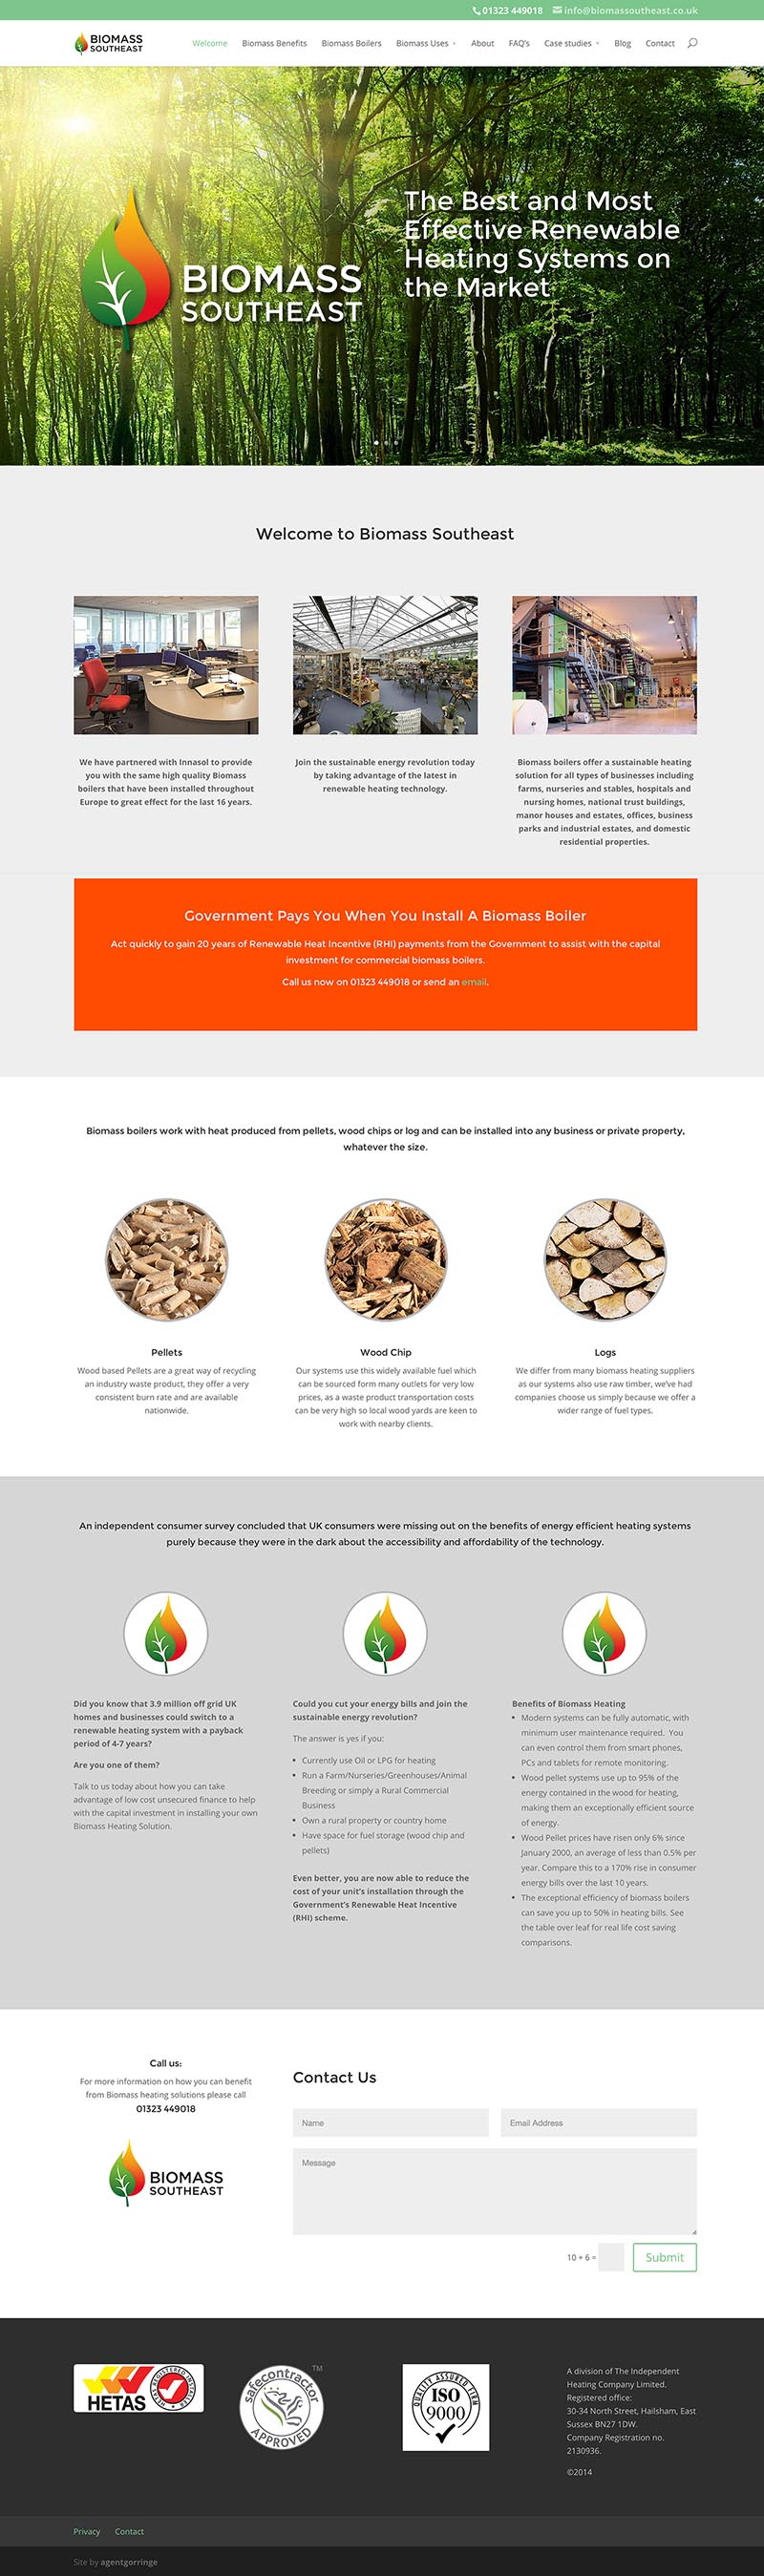 Biomass Southeast Website